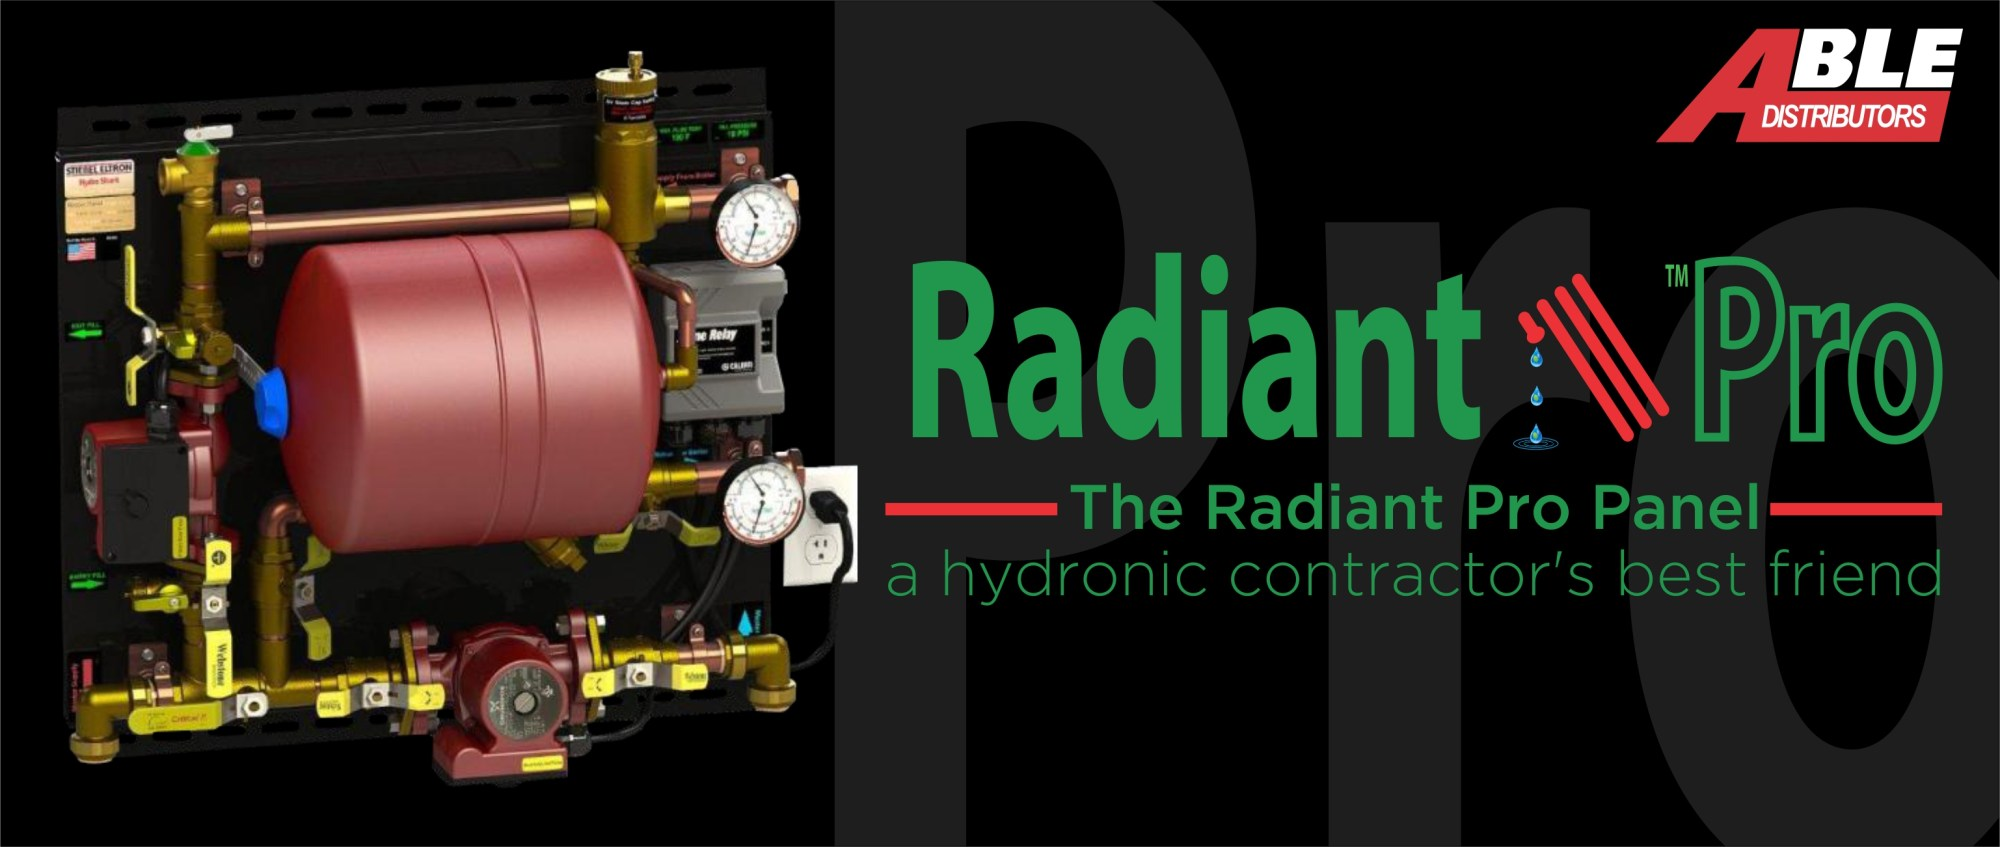 hight resolution of the radiant pro panel a hydronic contractor s best friend